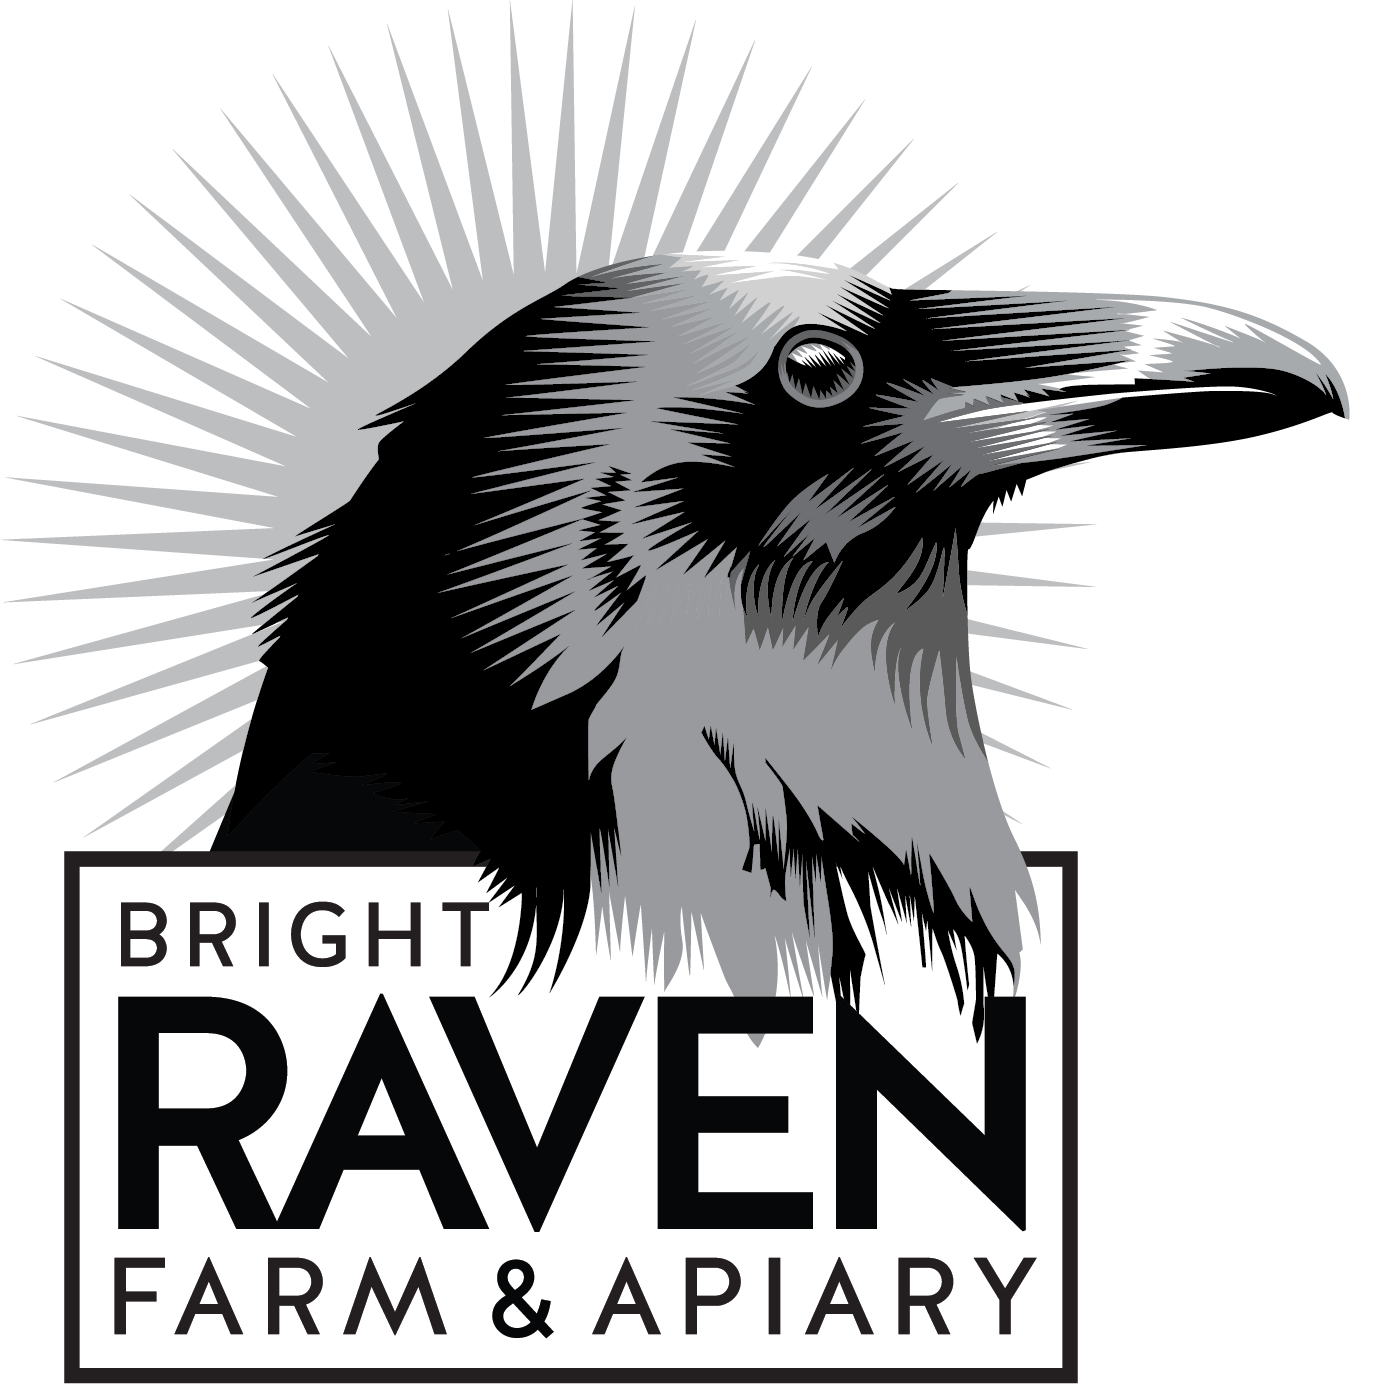 New logo for Bright Raven Farm & Apiary.